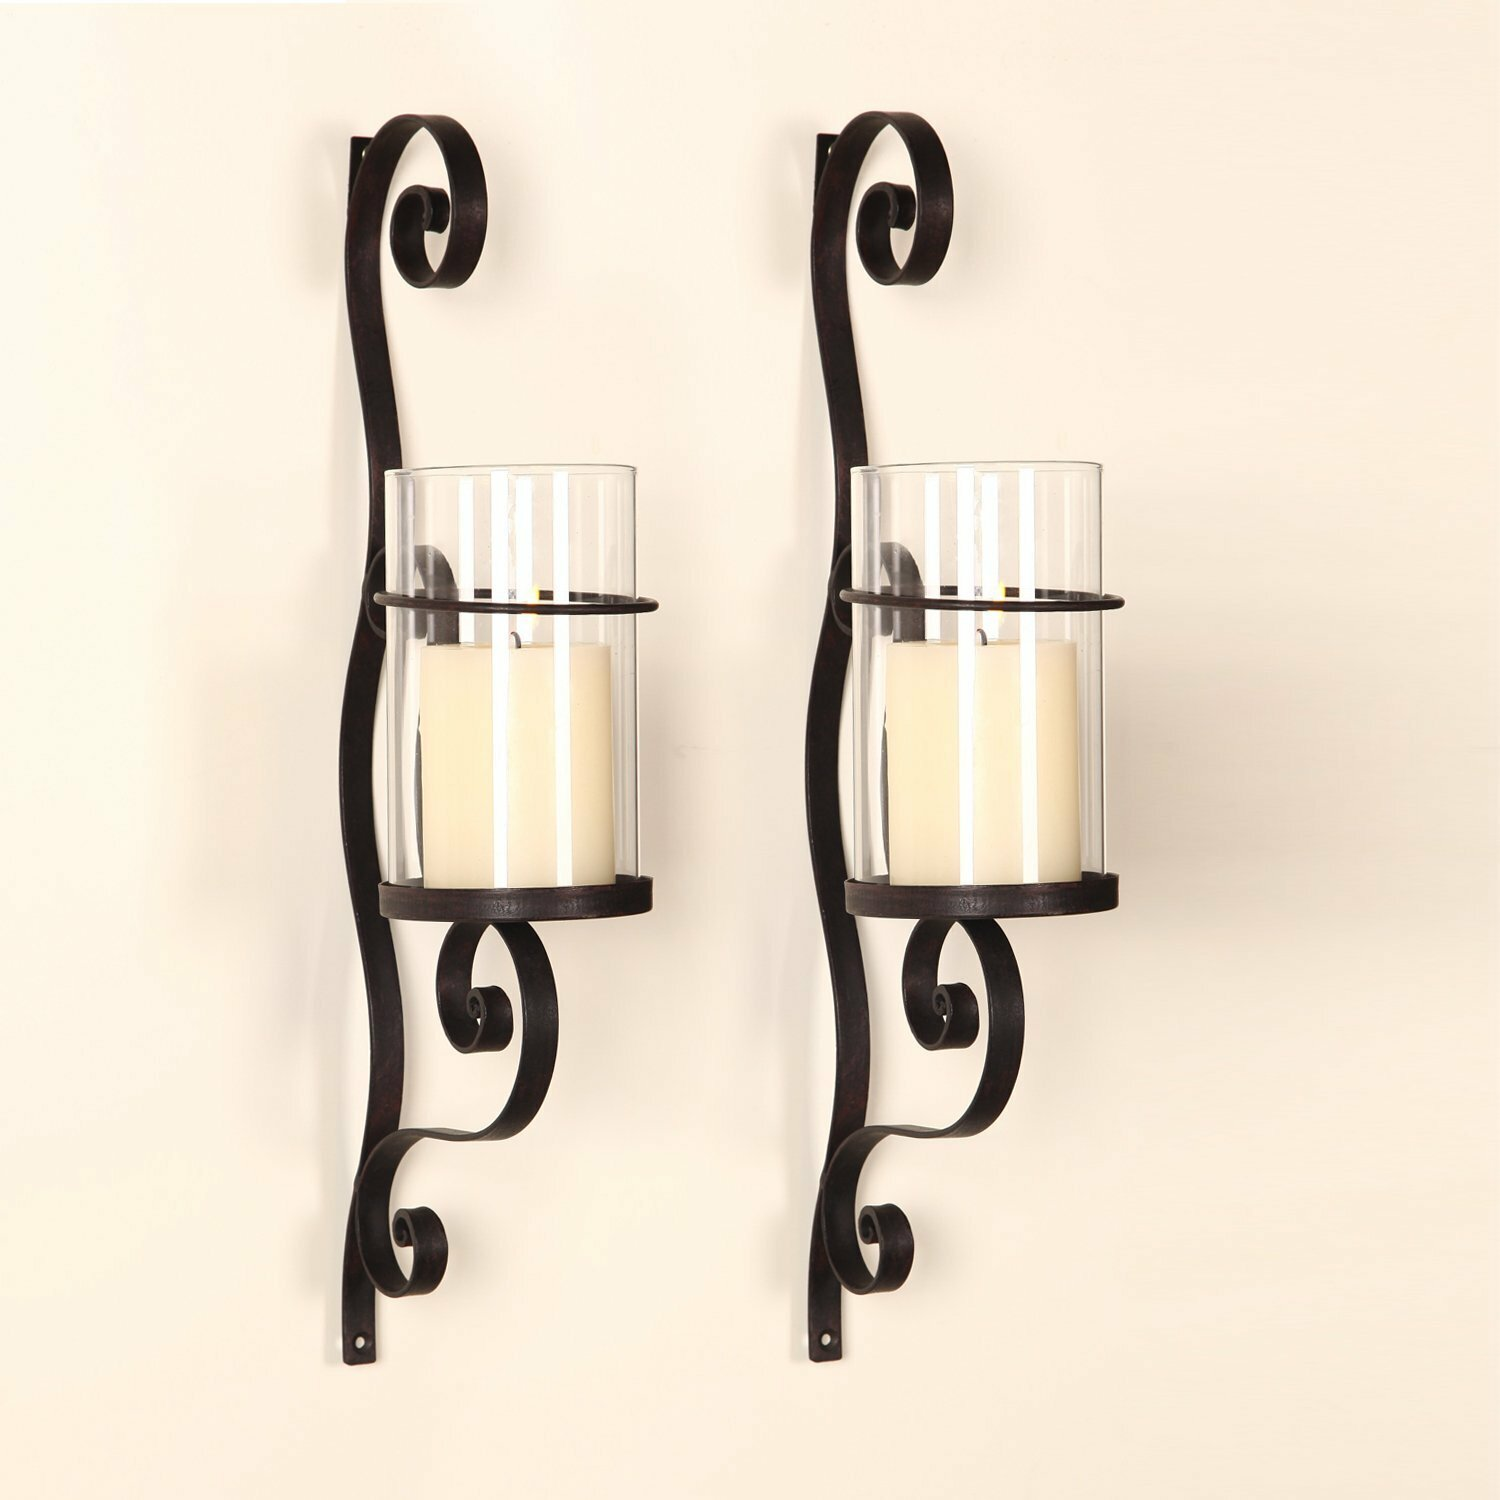 Wall Sconces Candles Holder : AdecoTrading Iron Wall Sconce Candle Holder & Reviews Wayfair